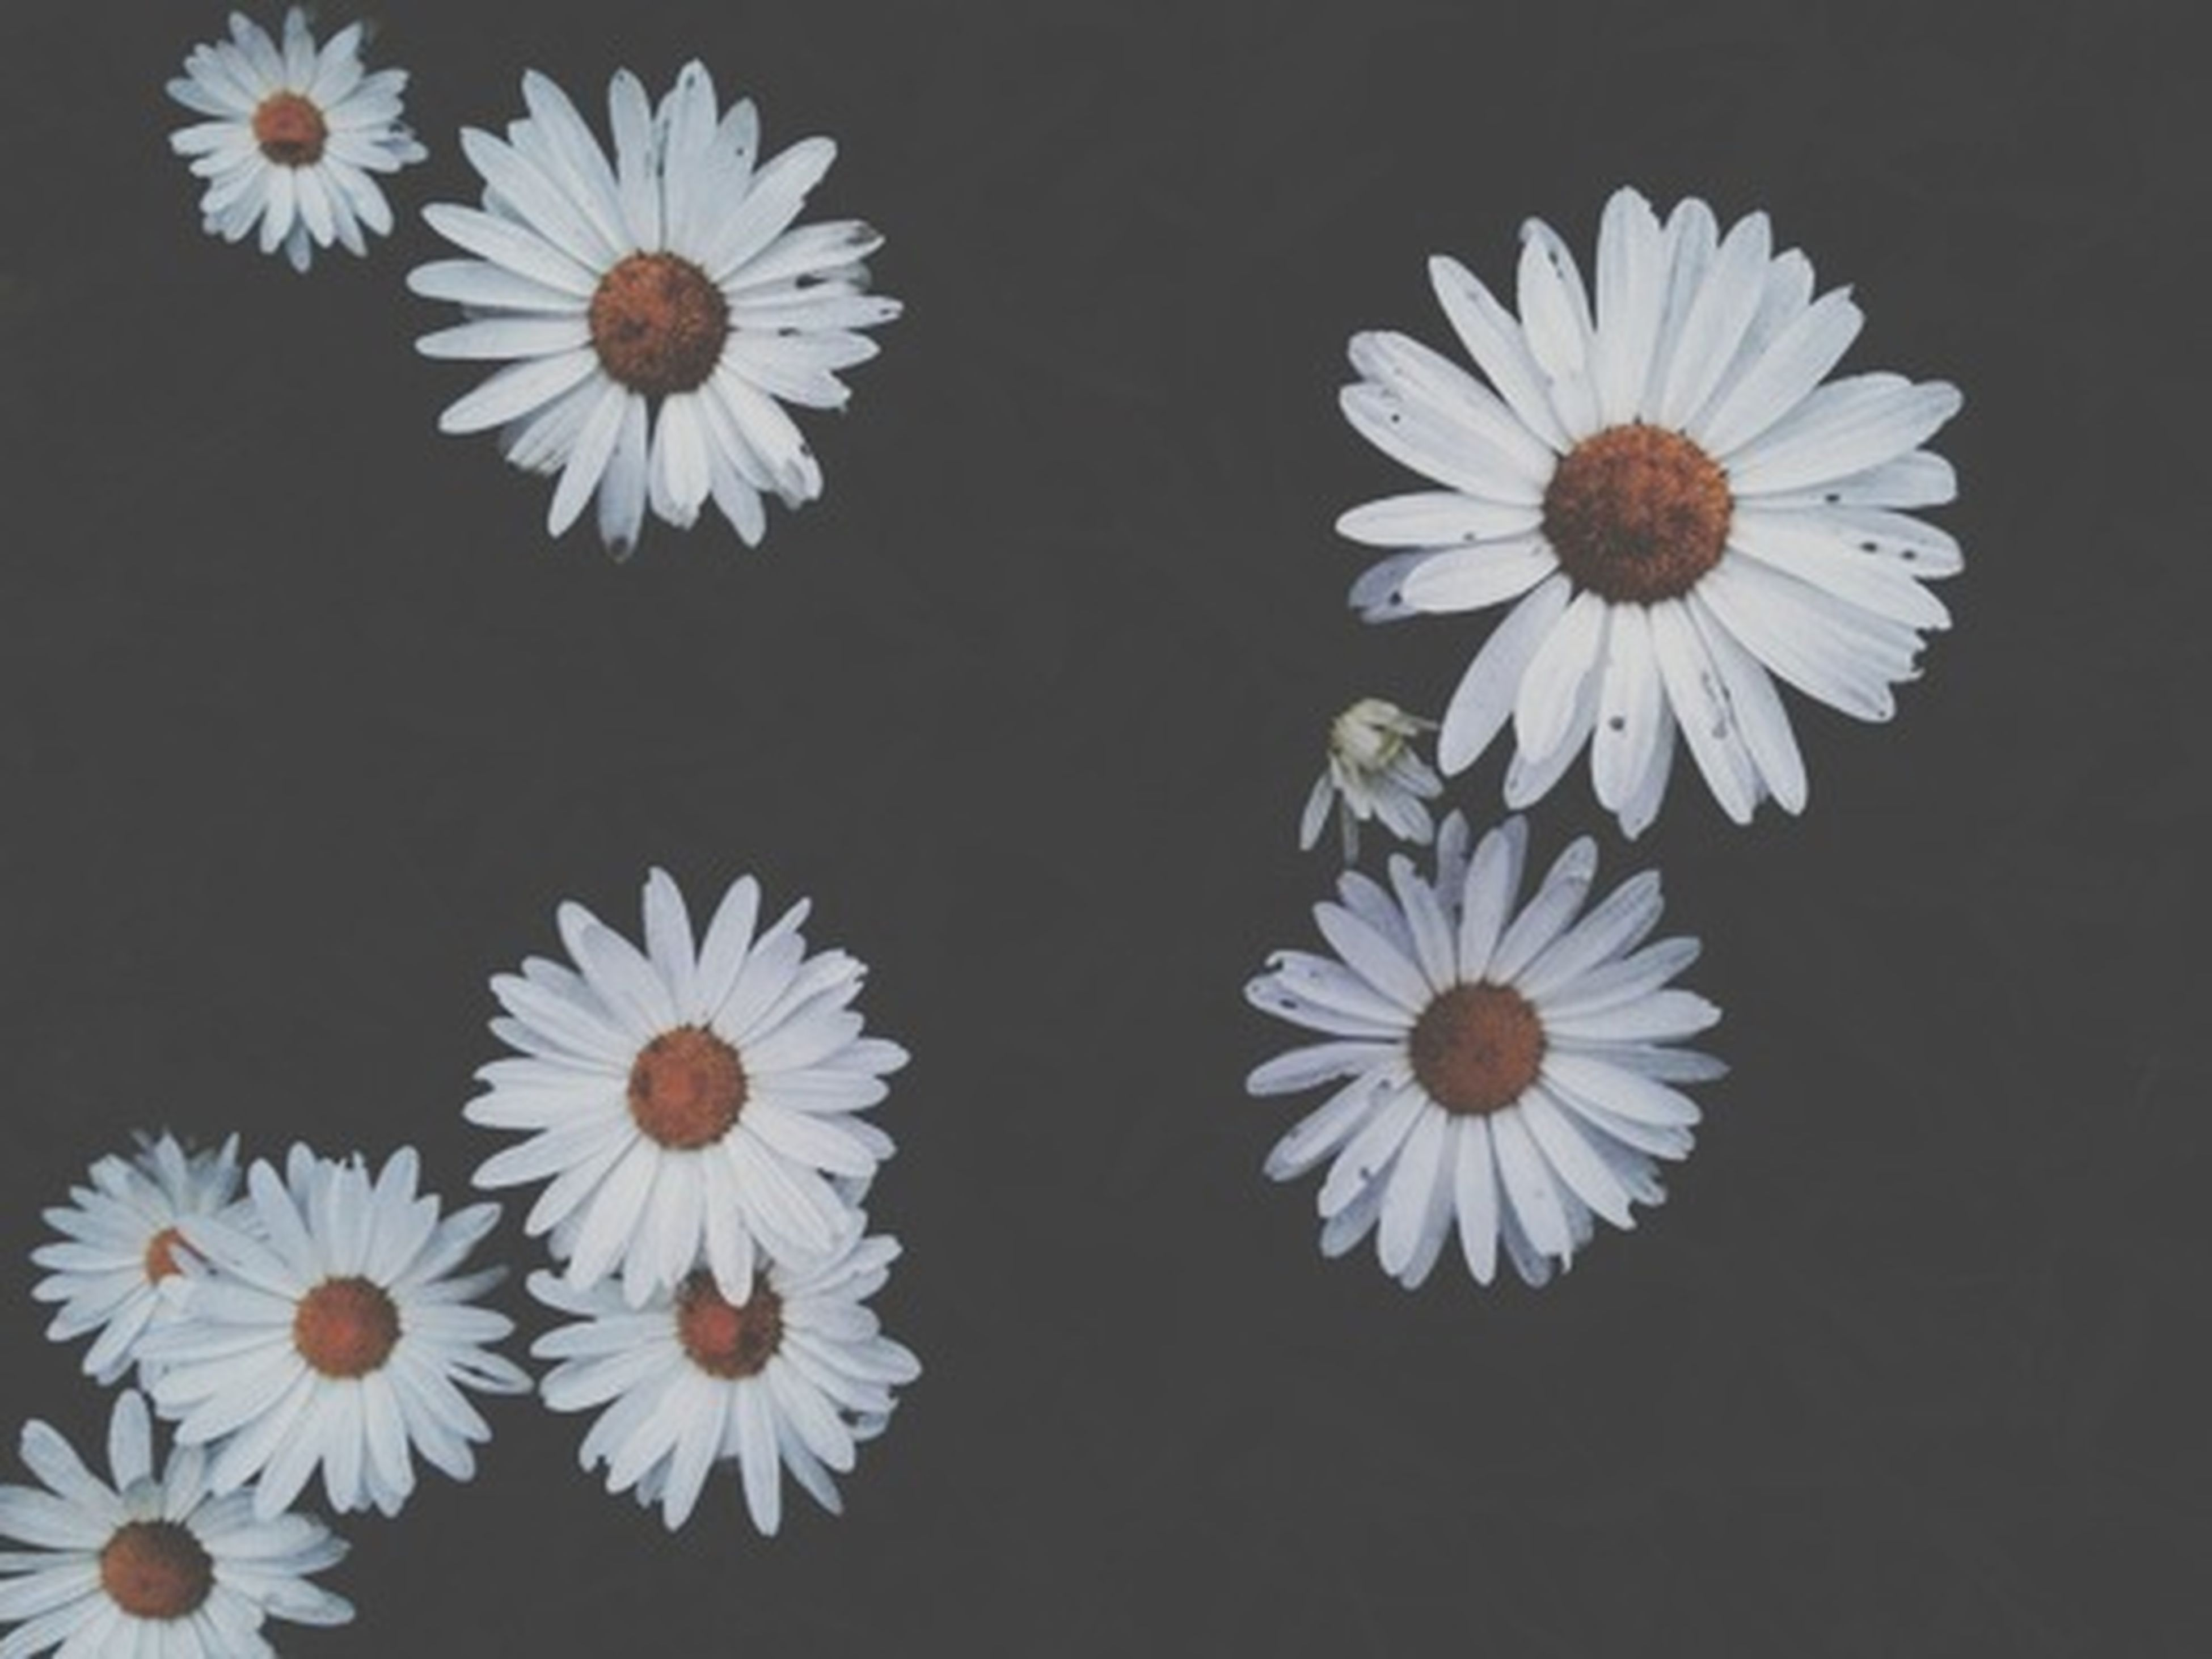 flower, petal, freshness, fragility, flower head, white color, high angle view, daisy, indoors, beauty in nature, pollen, close-up, table, nature, no people, directly above, plant, blooming, growth, still life